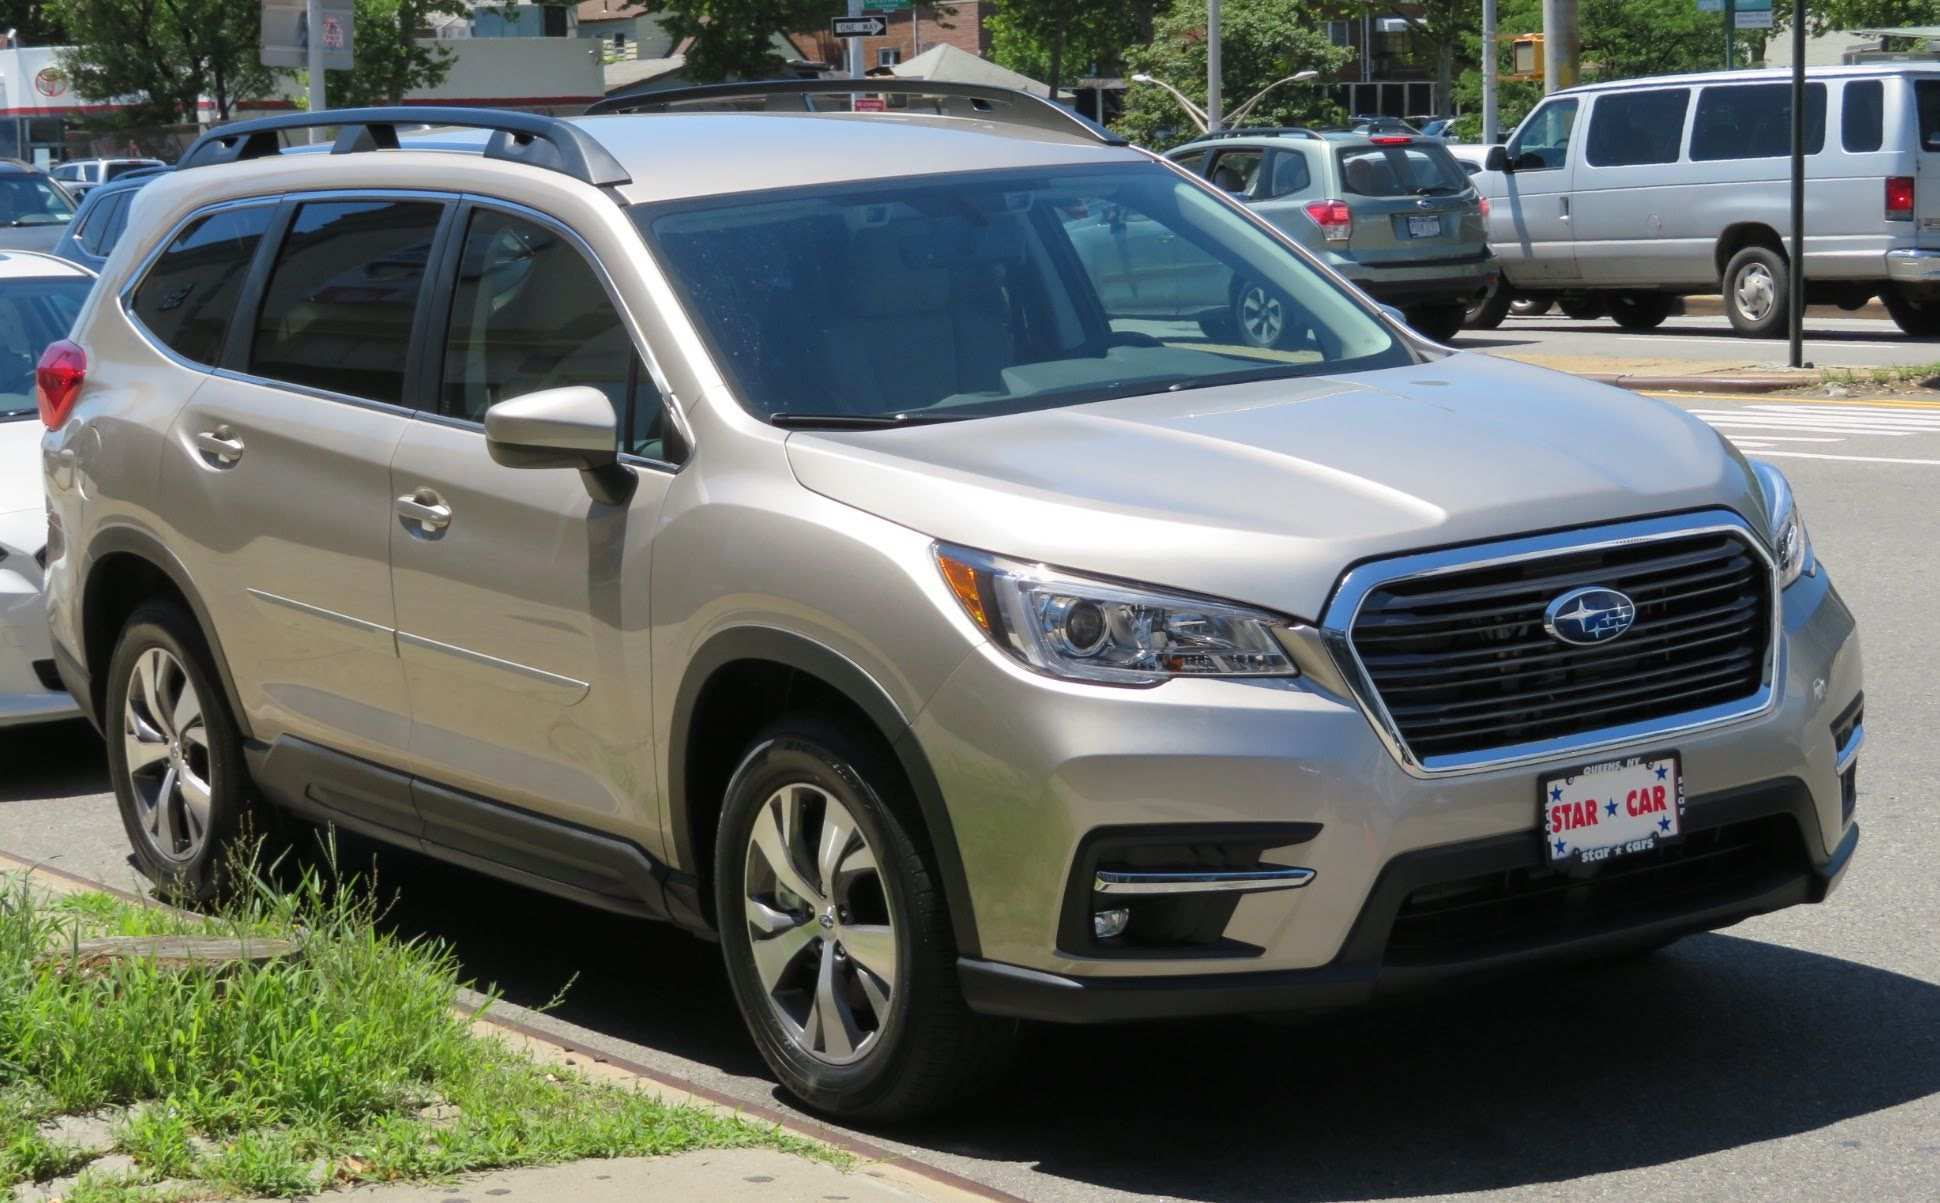 69 All New 2019 Subaru Ascent Engine Specs Release